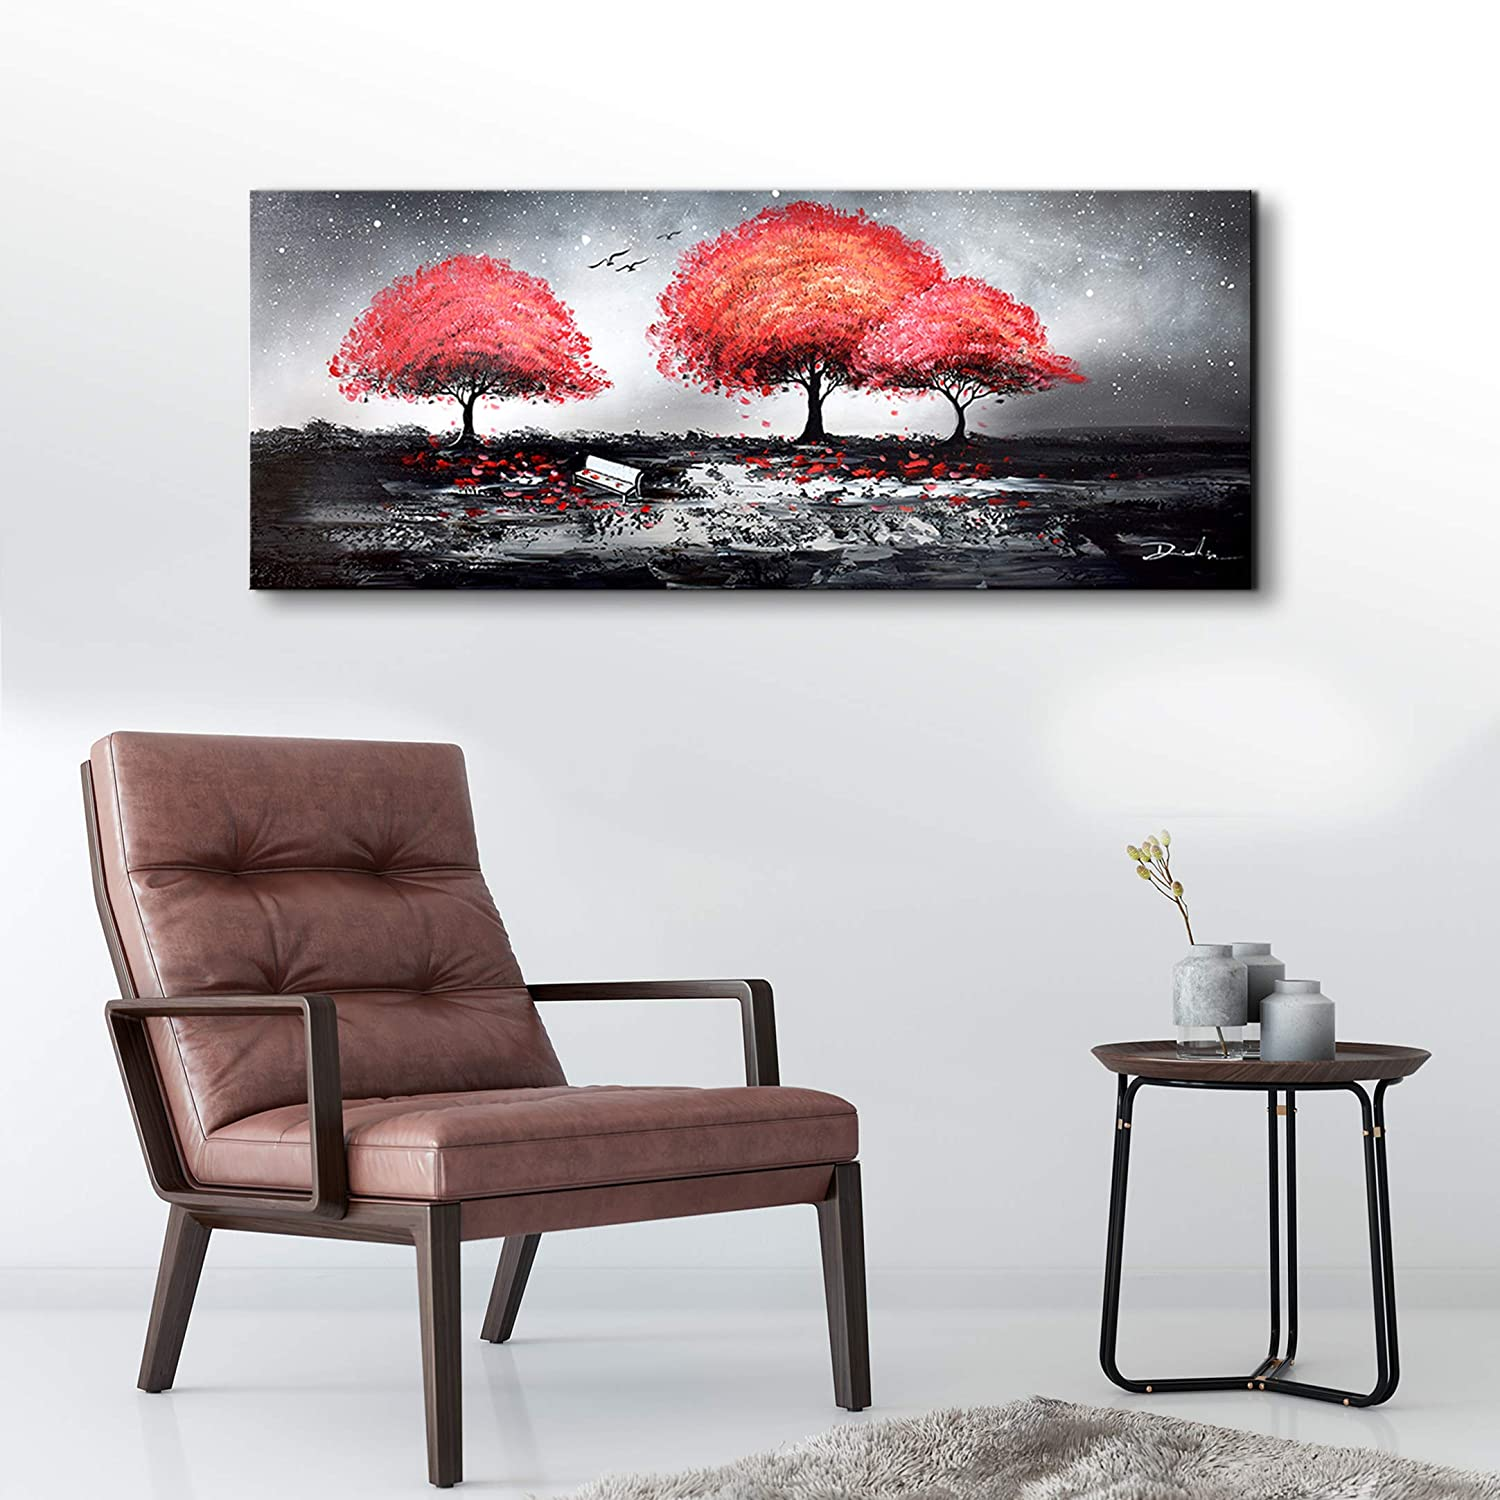 Large Modern Wall Art Red Tree Fall Landscape Oil Painting on Canvas Black and White Artwork Stretched and Framed Ready to Hang for Living Room Bedroom Office Wall Art Home Decoration 24×48 inches